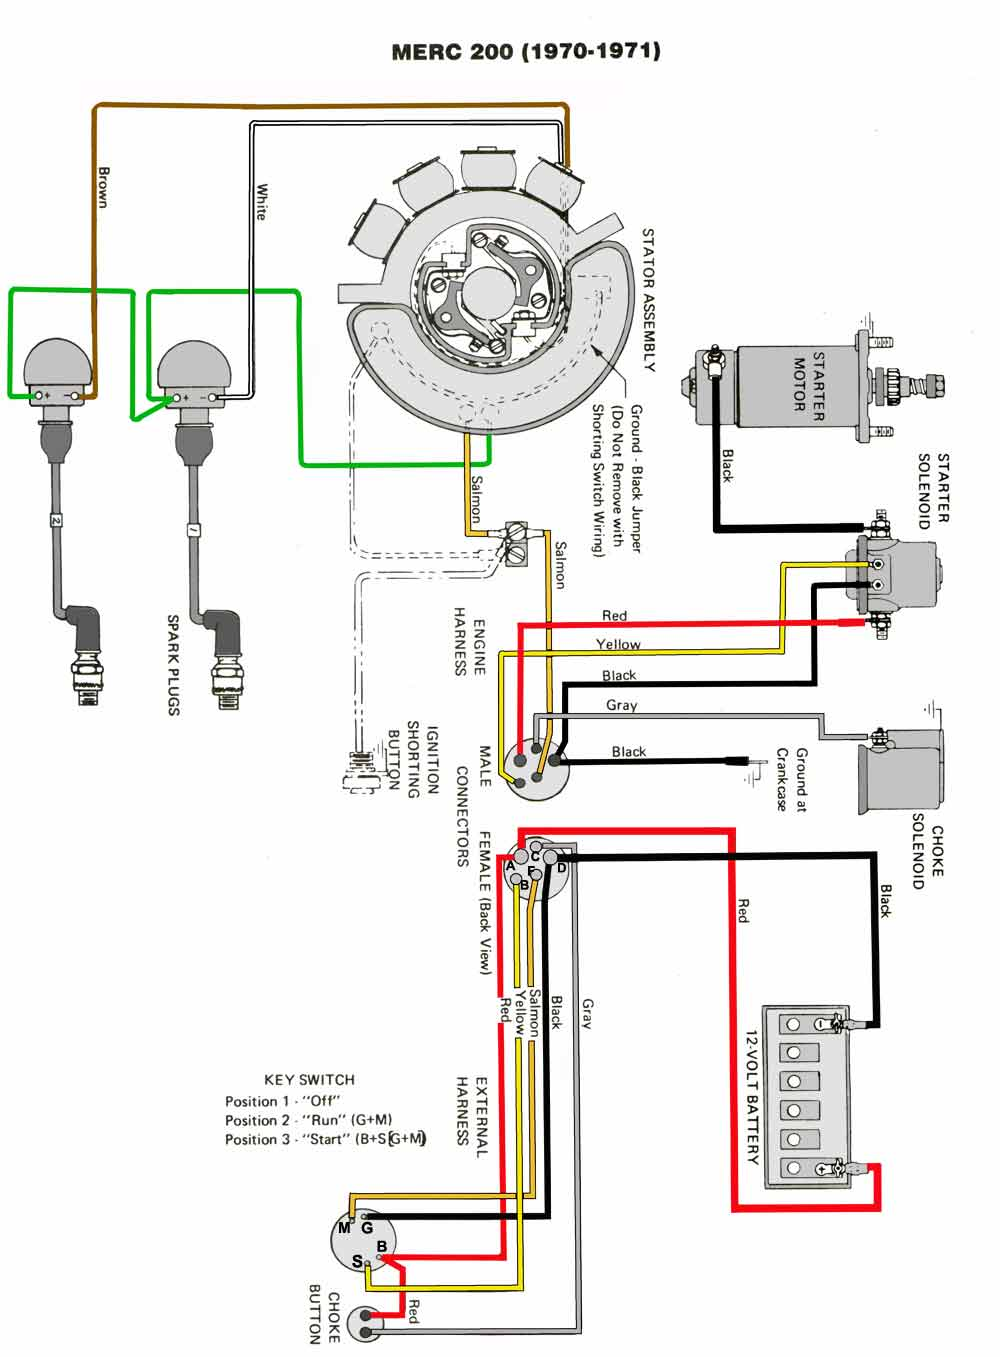 1971 Mercury Outboard Wiring Diagram Diagrams Source 650 Series Mastertech Marin 1965